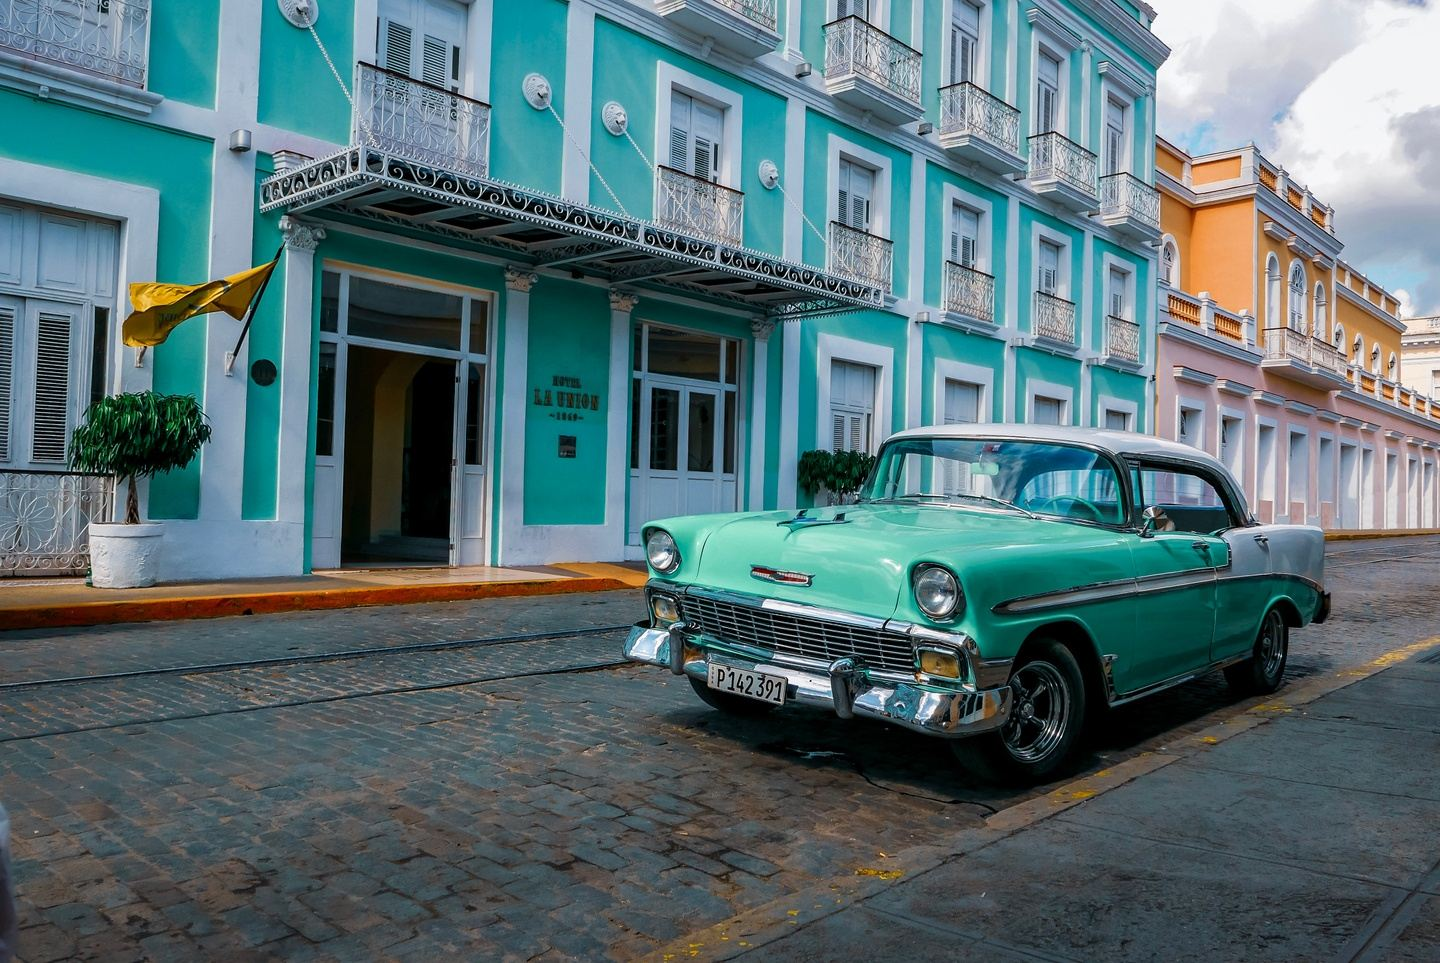 Cuba: Exploring the Island's Past, Present & Future December 2020